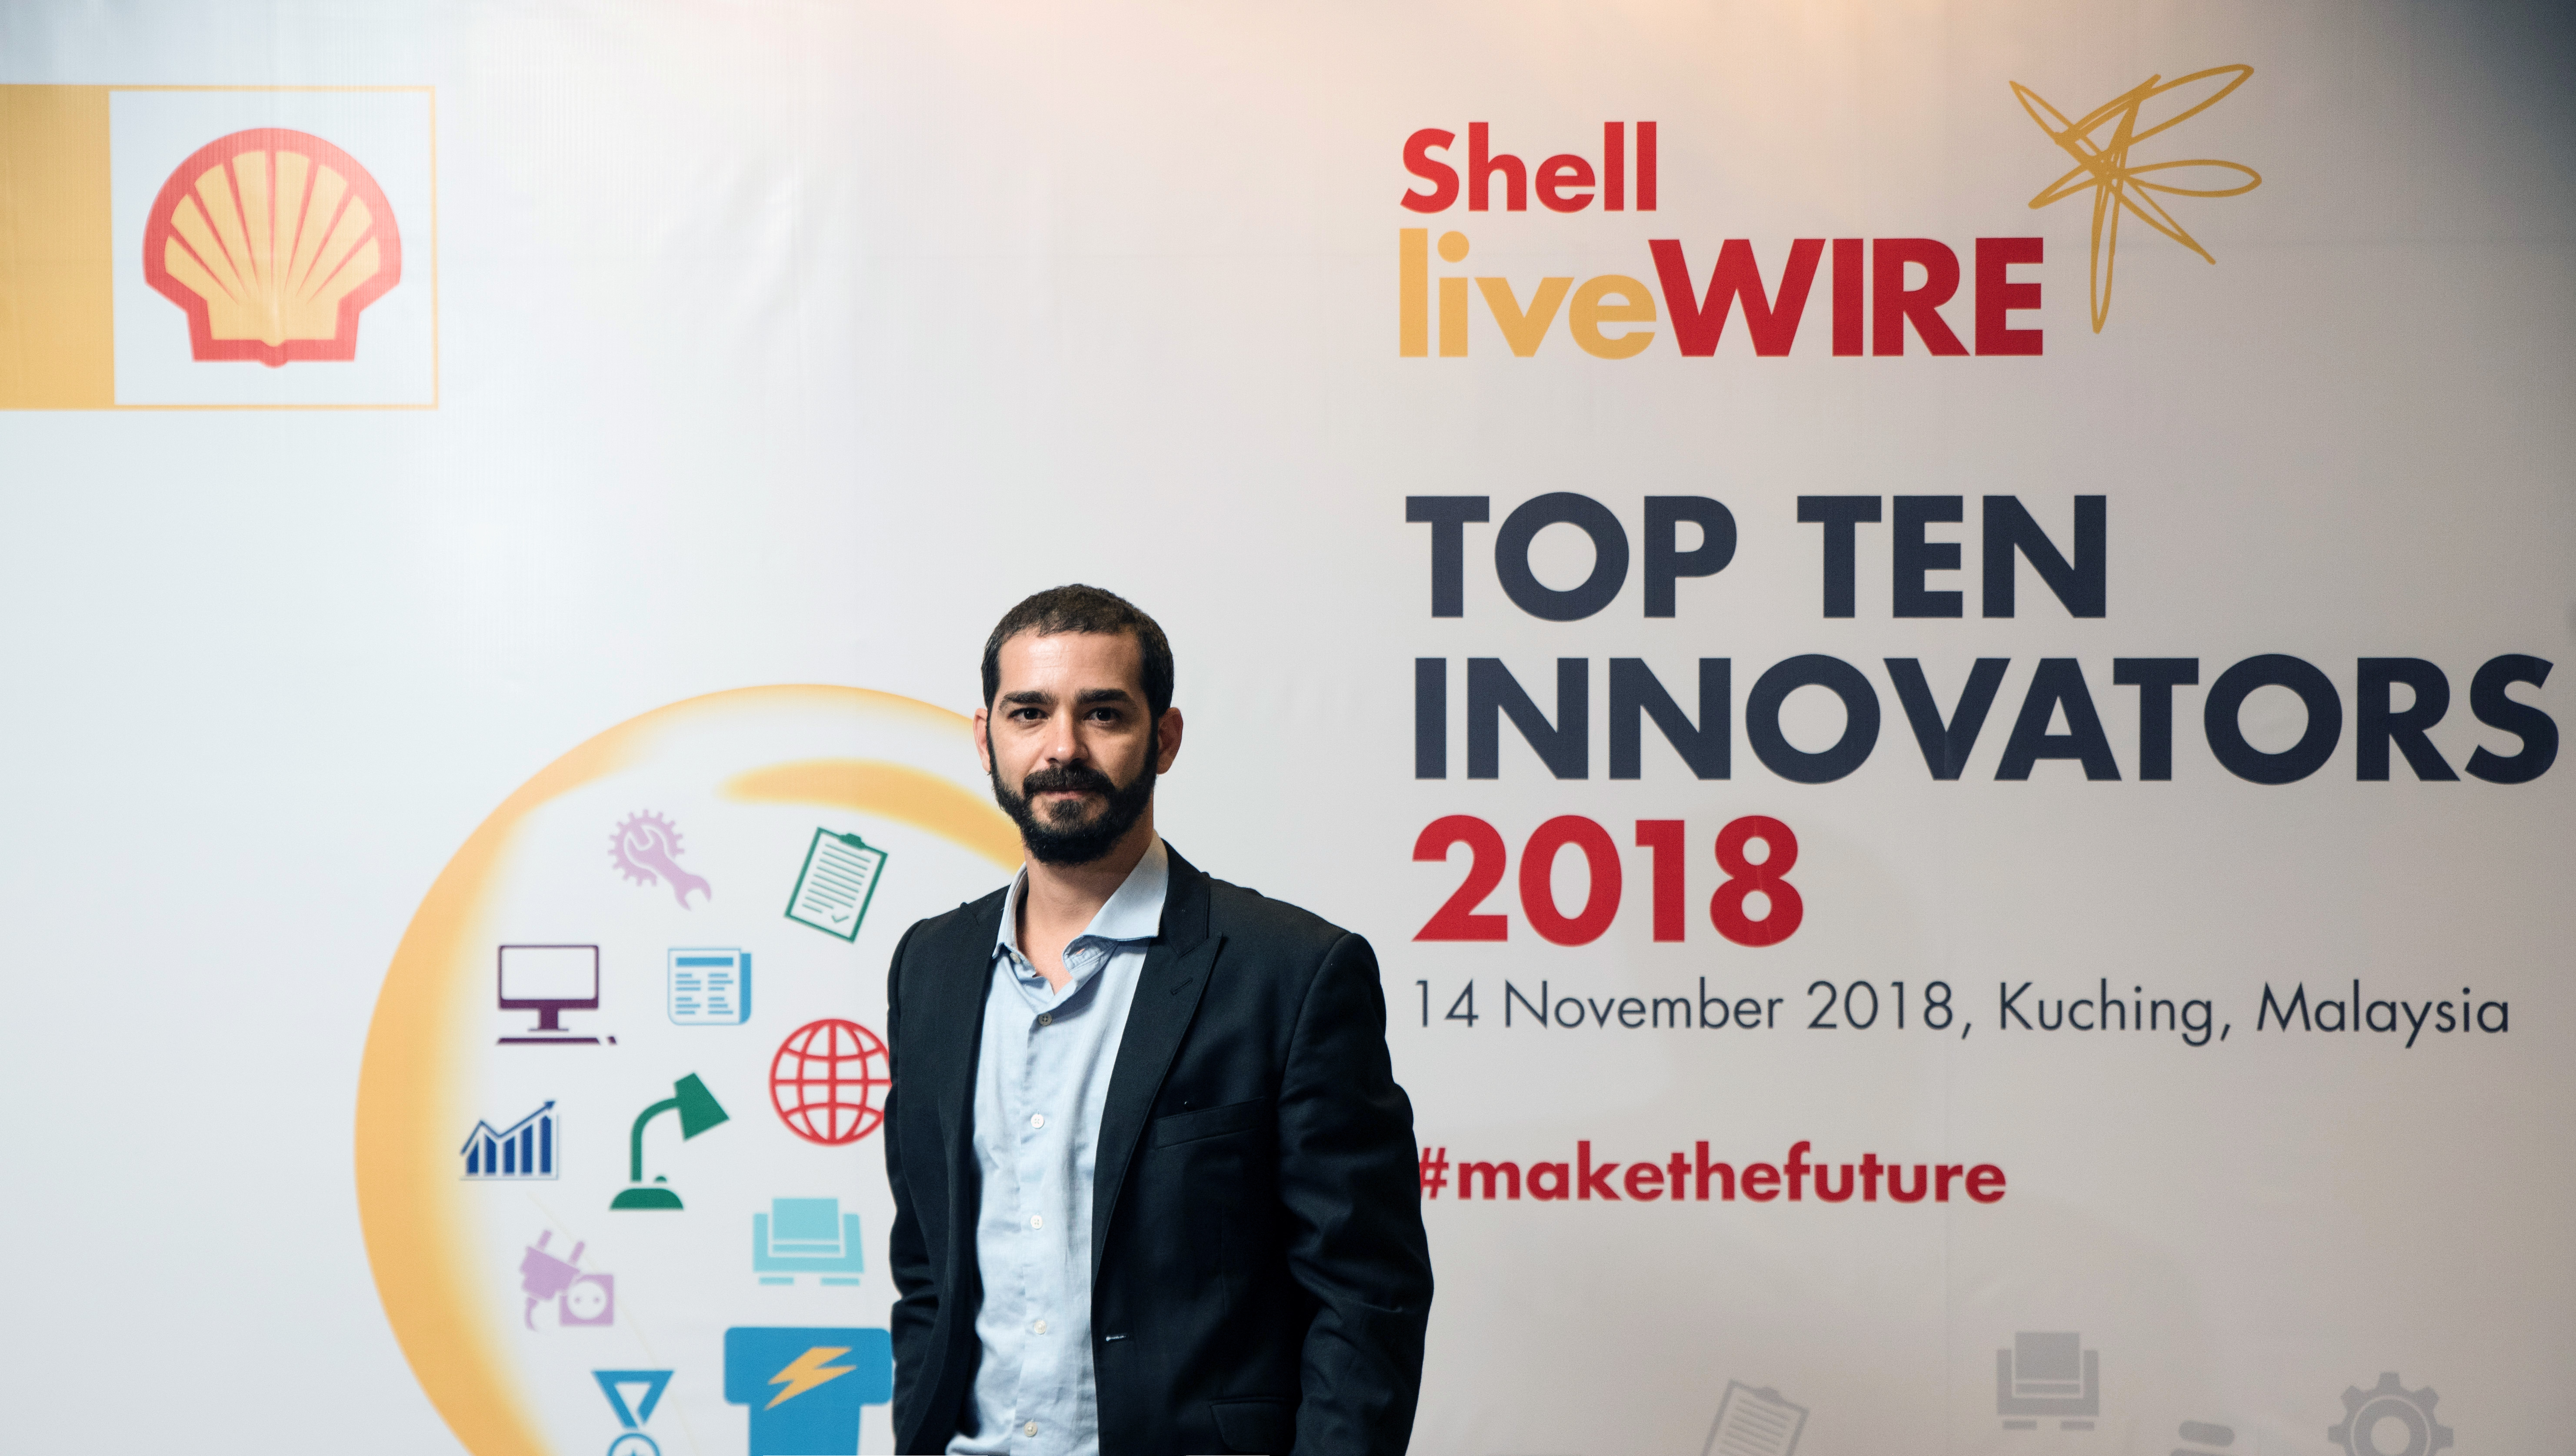 Prêmio Top Ten Innovators Shell 2018